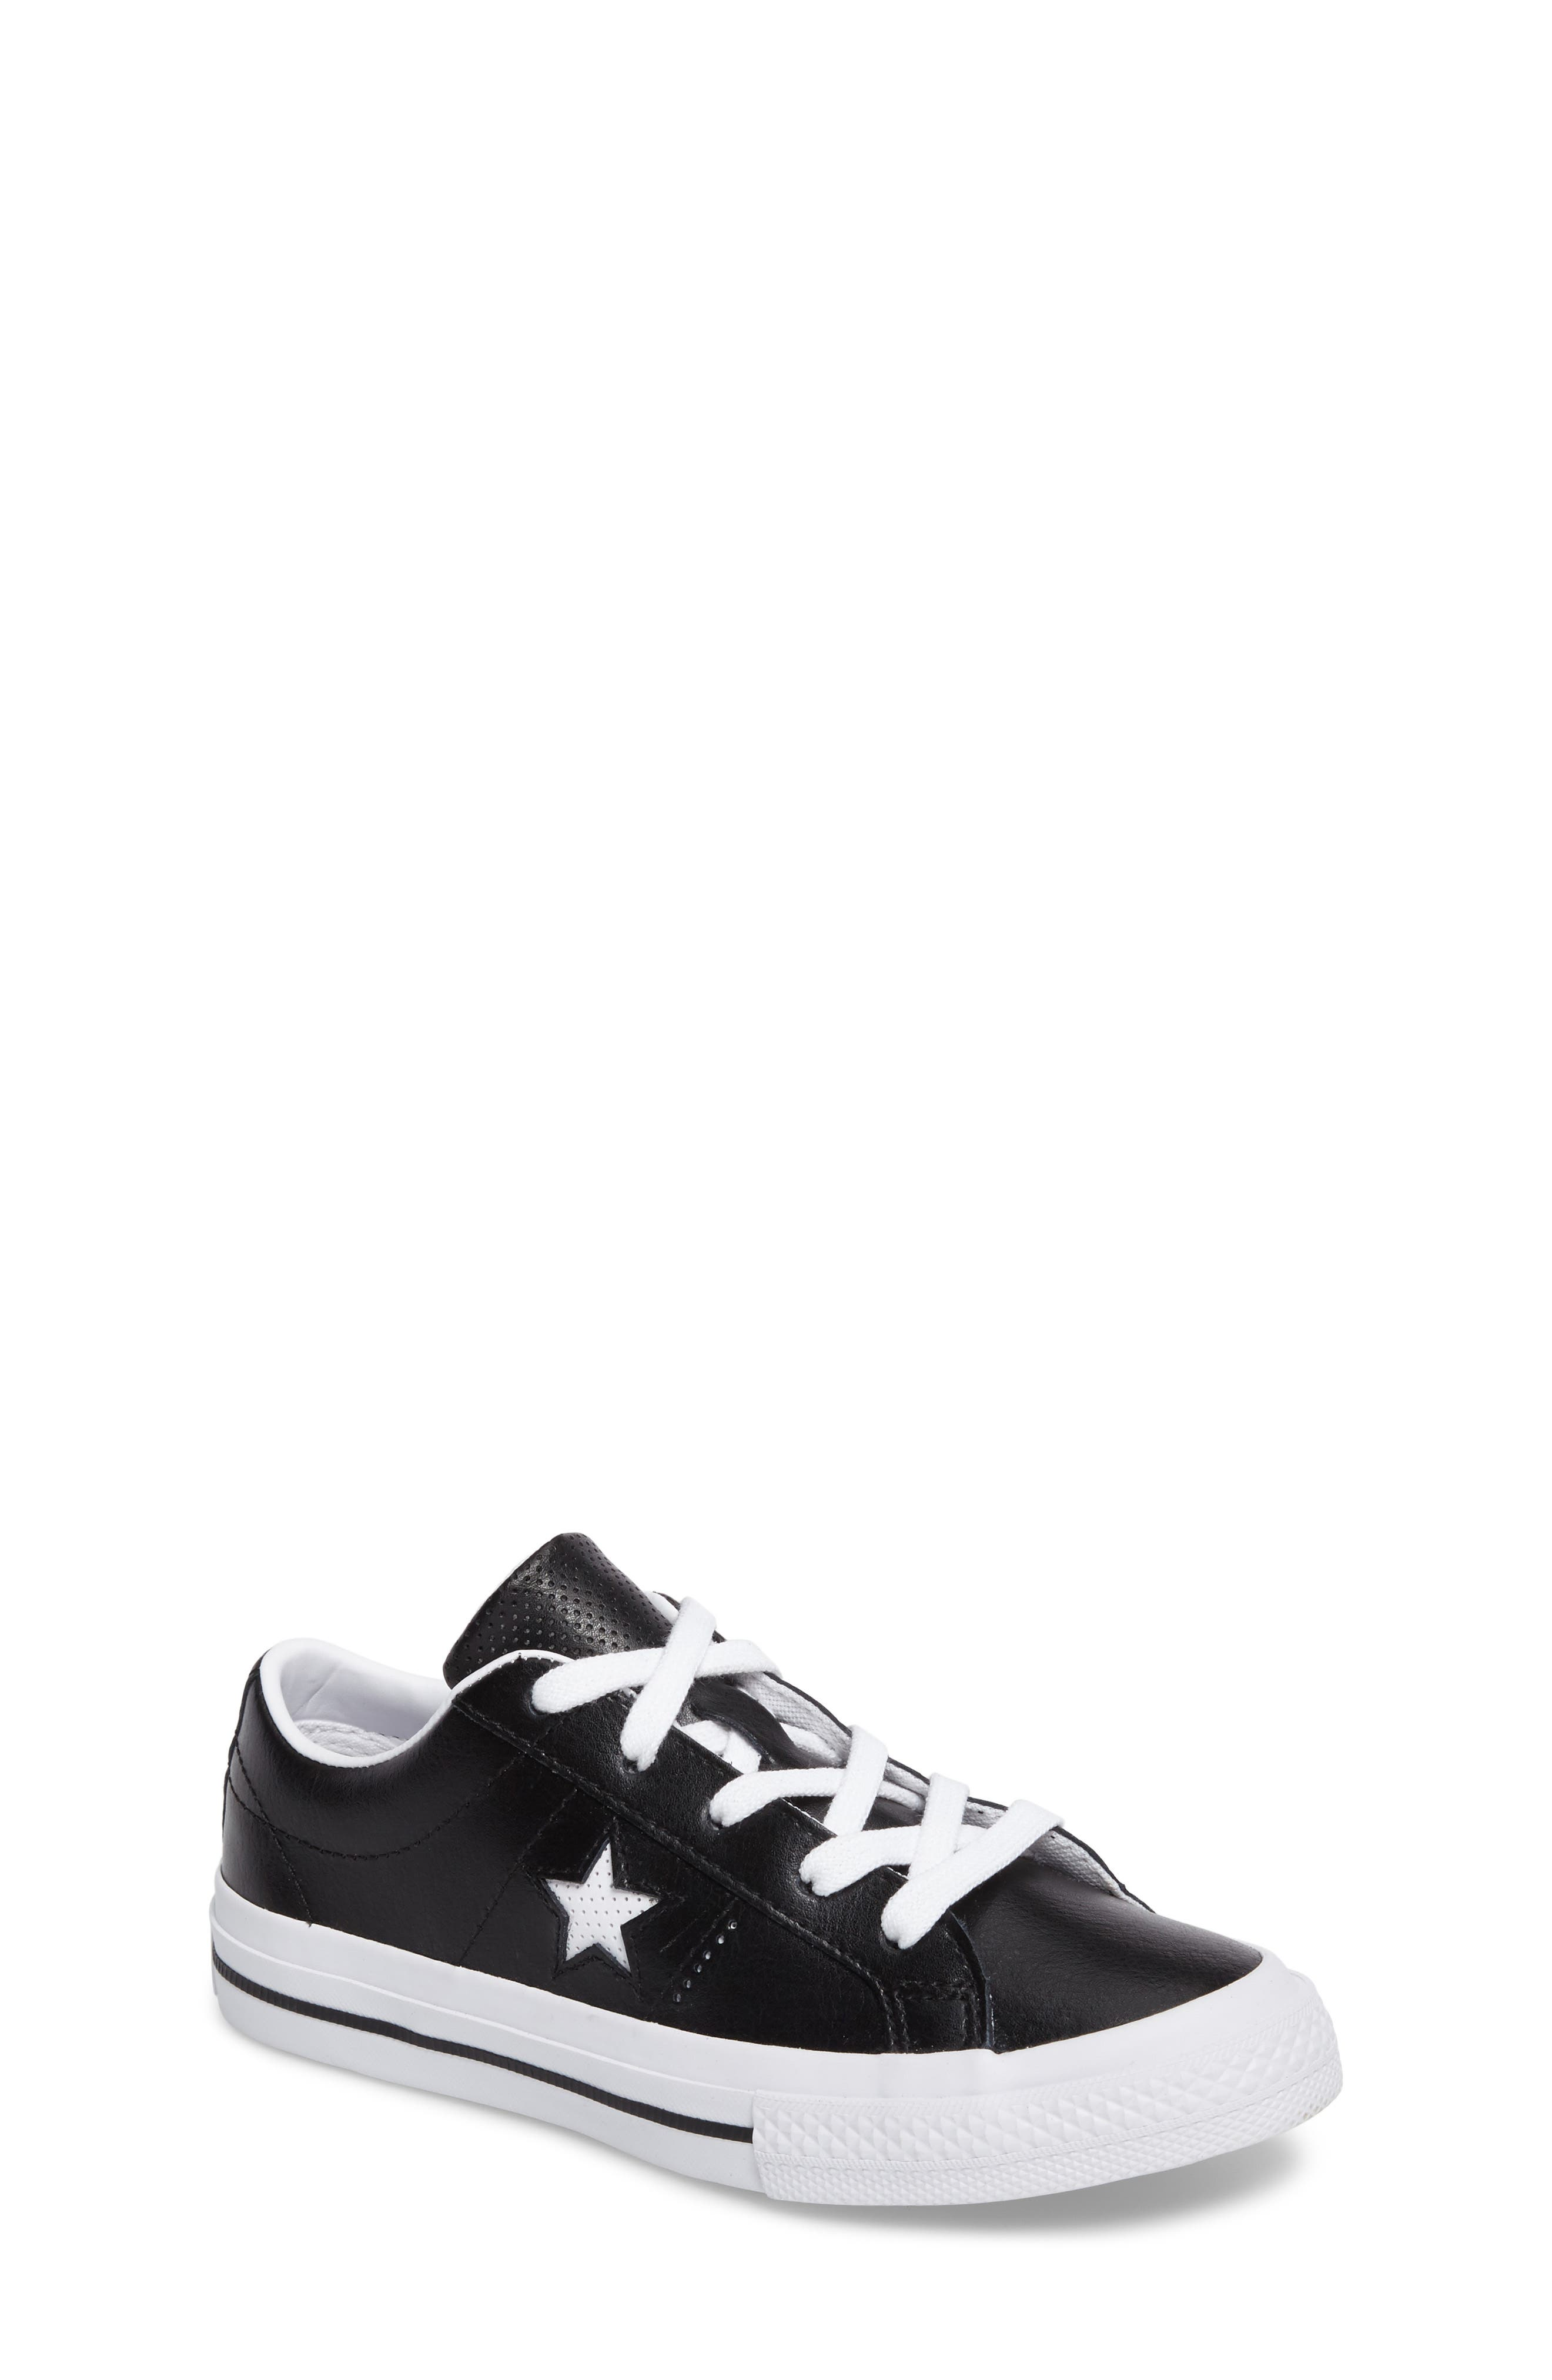 Chuck Taylor<sup>®</sup> All Star<sup>®</sup> One Star Sneaker,                         Main,                         color, 001